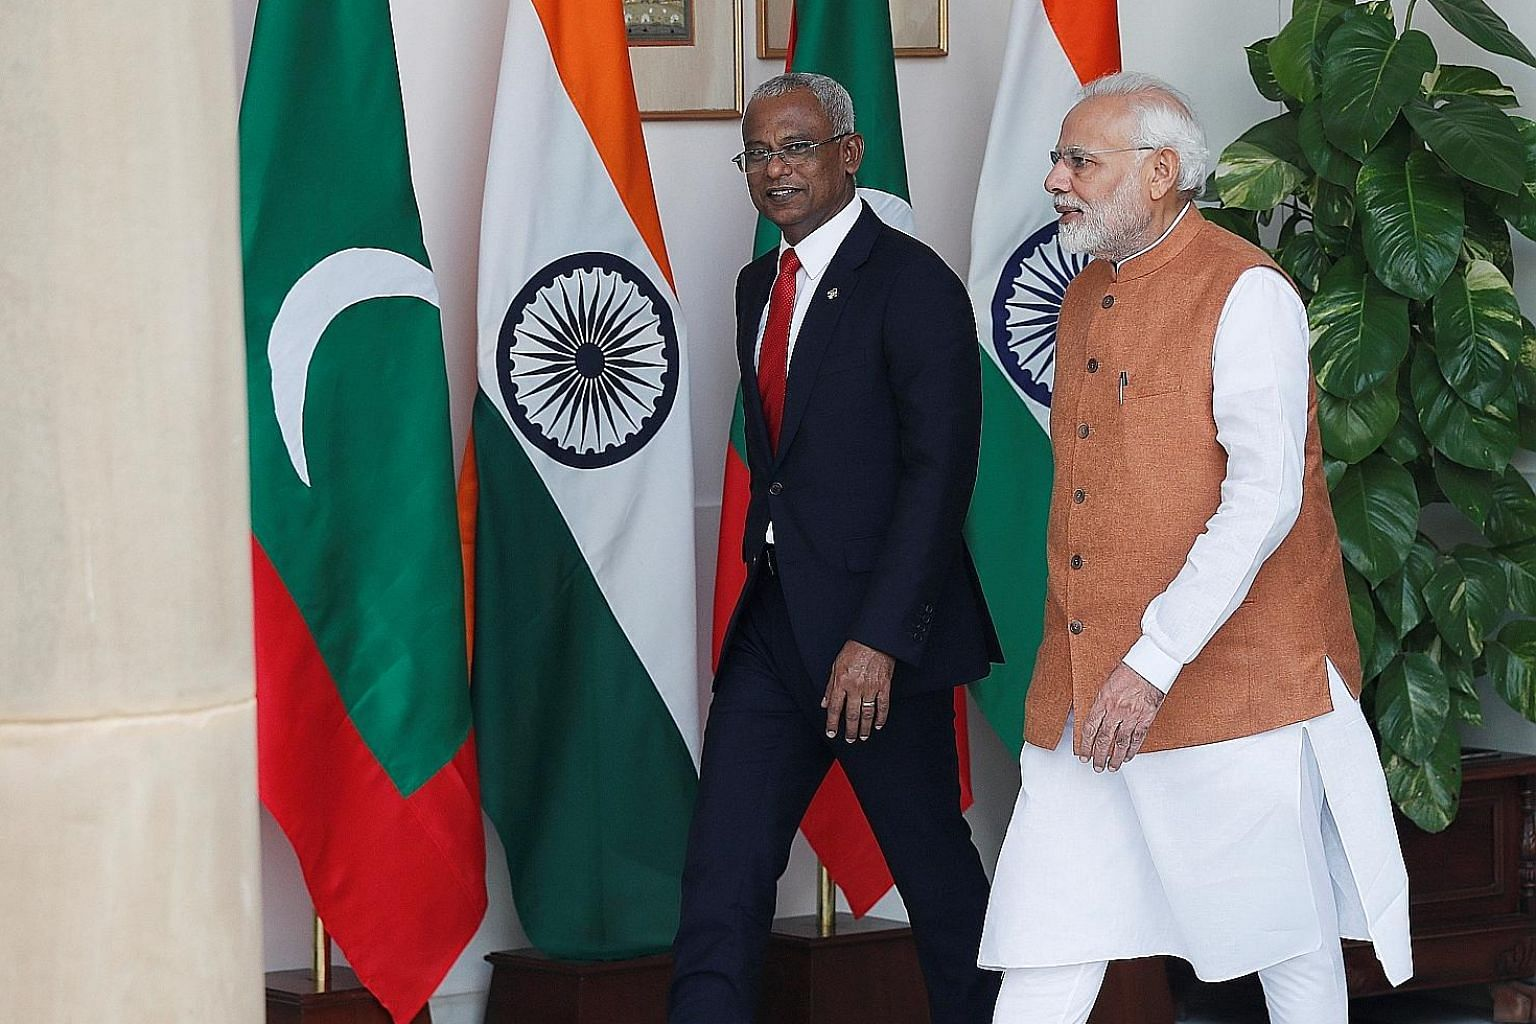 Maldives' President Ibrahim Mohamed Solih (left) and India's Prime Minister Narendra Modi arriving for their meeting at Hyderabad House in New Delhi on Monday.